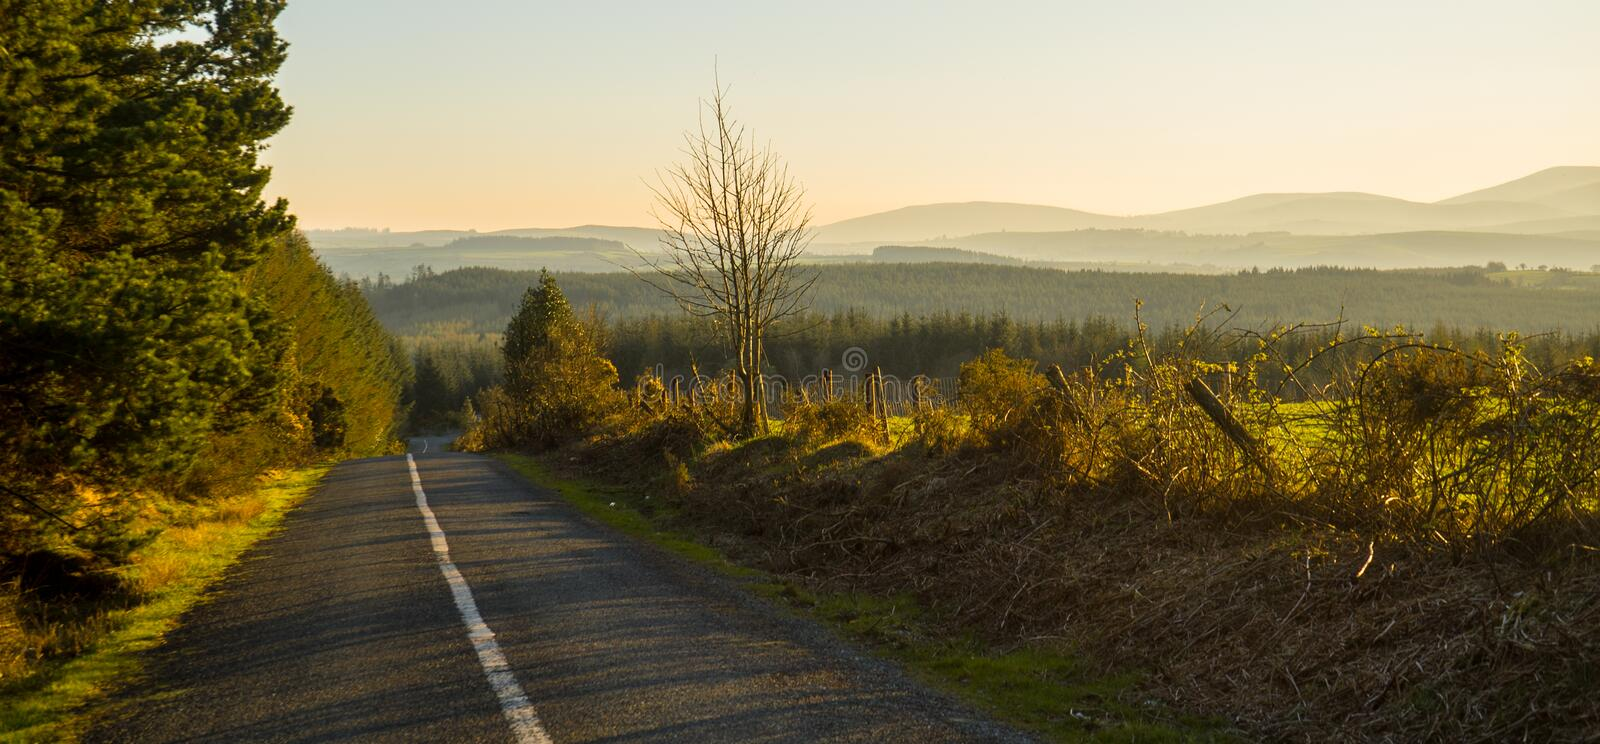 View From a Lonely Irish Countryside Road at Sunset in Waterford, Ireland royalty free stock photography